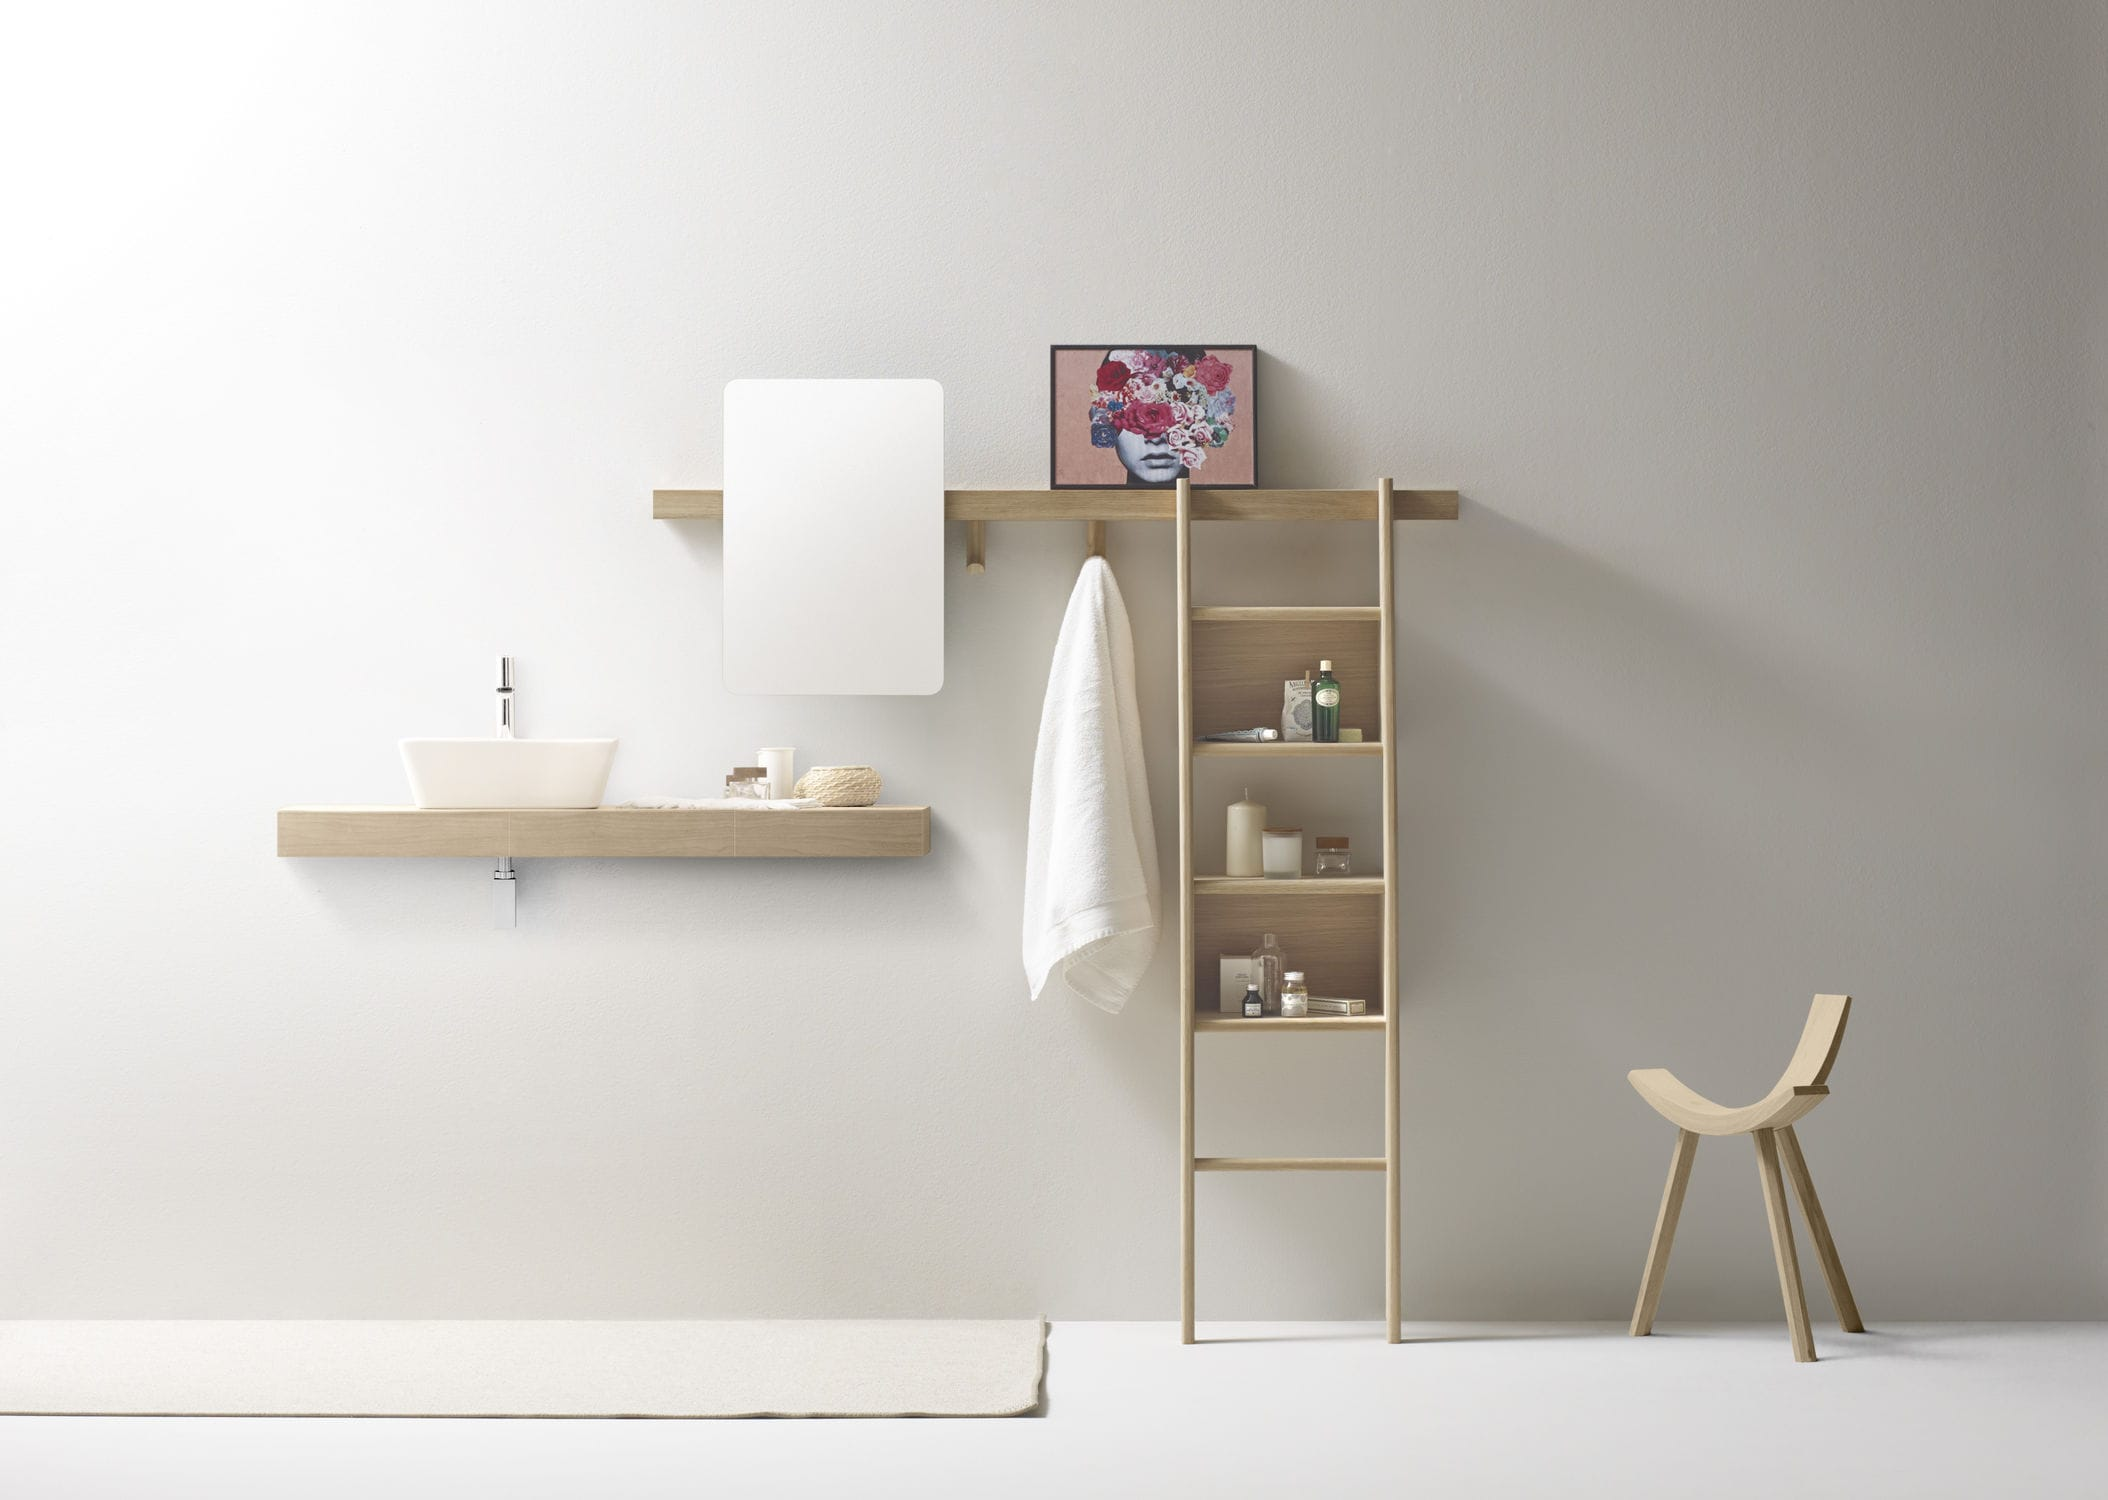 Design Contemporary Shelving wall mounted shelving system contemporary solid wood residential zutik by jean louis